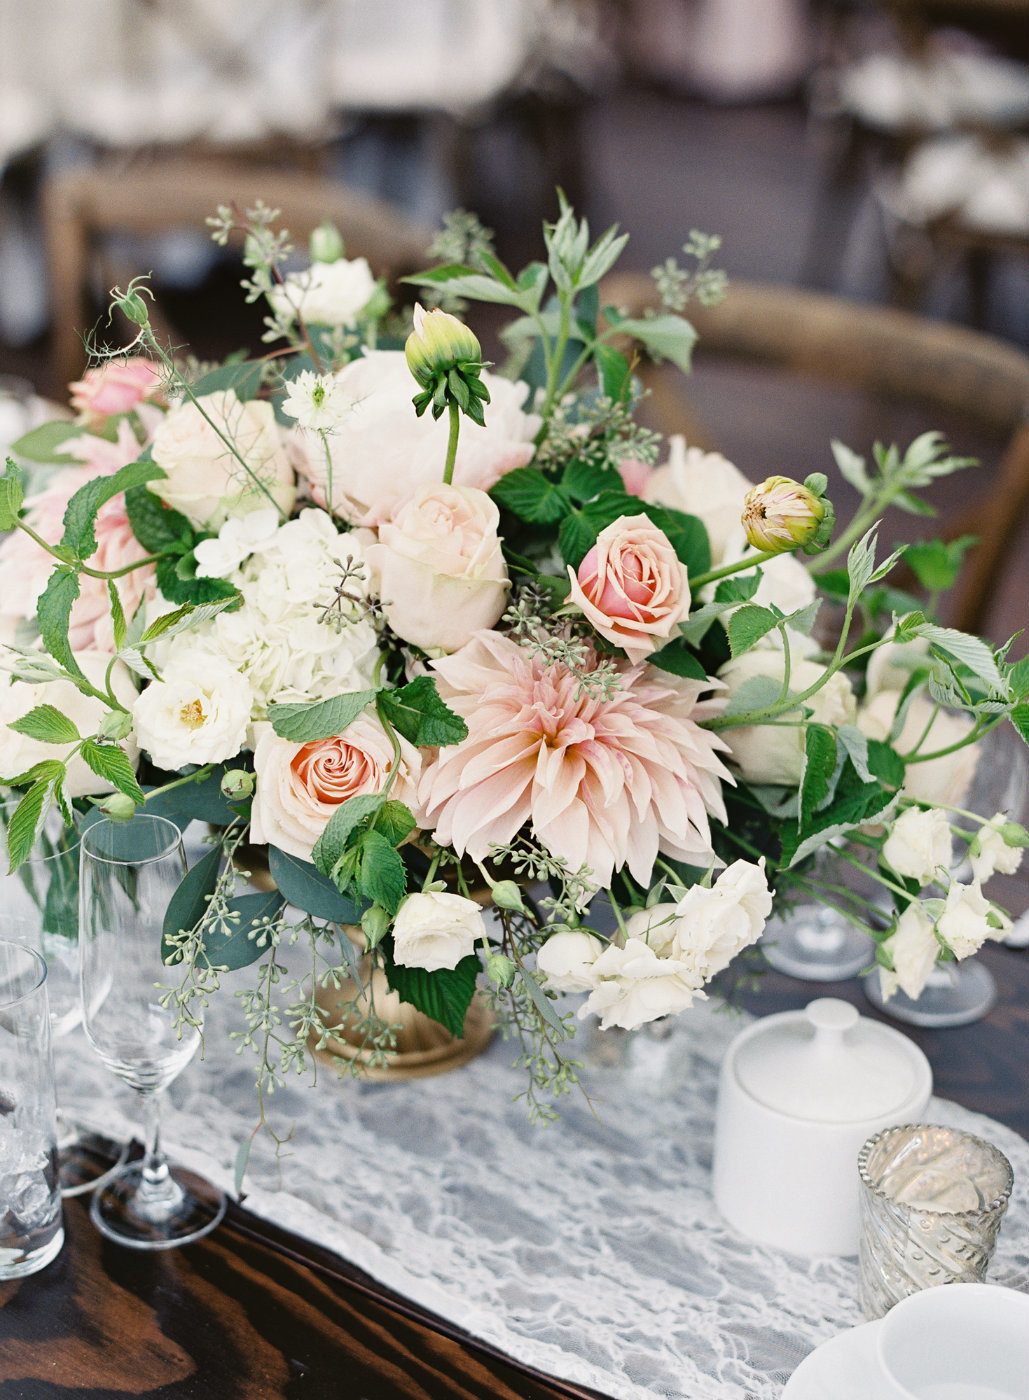 Gorgeous blush and cream wedding with garden greens at a luxury tent wedding.